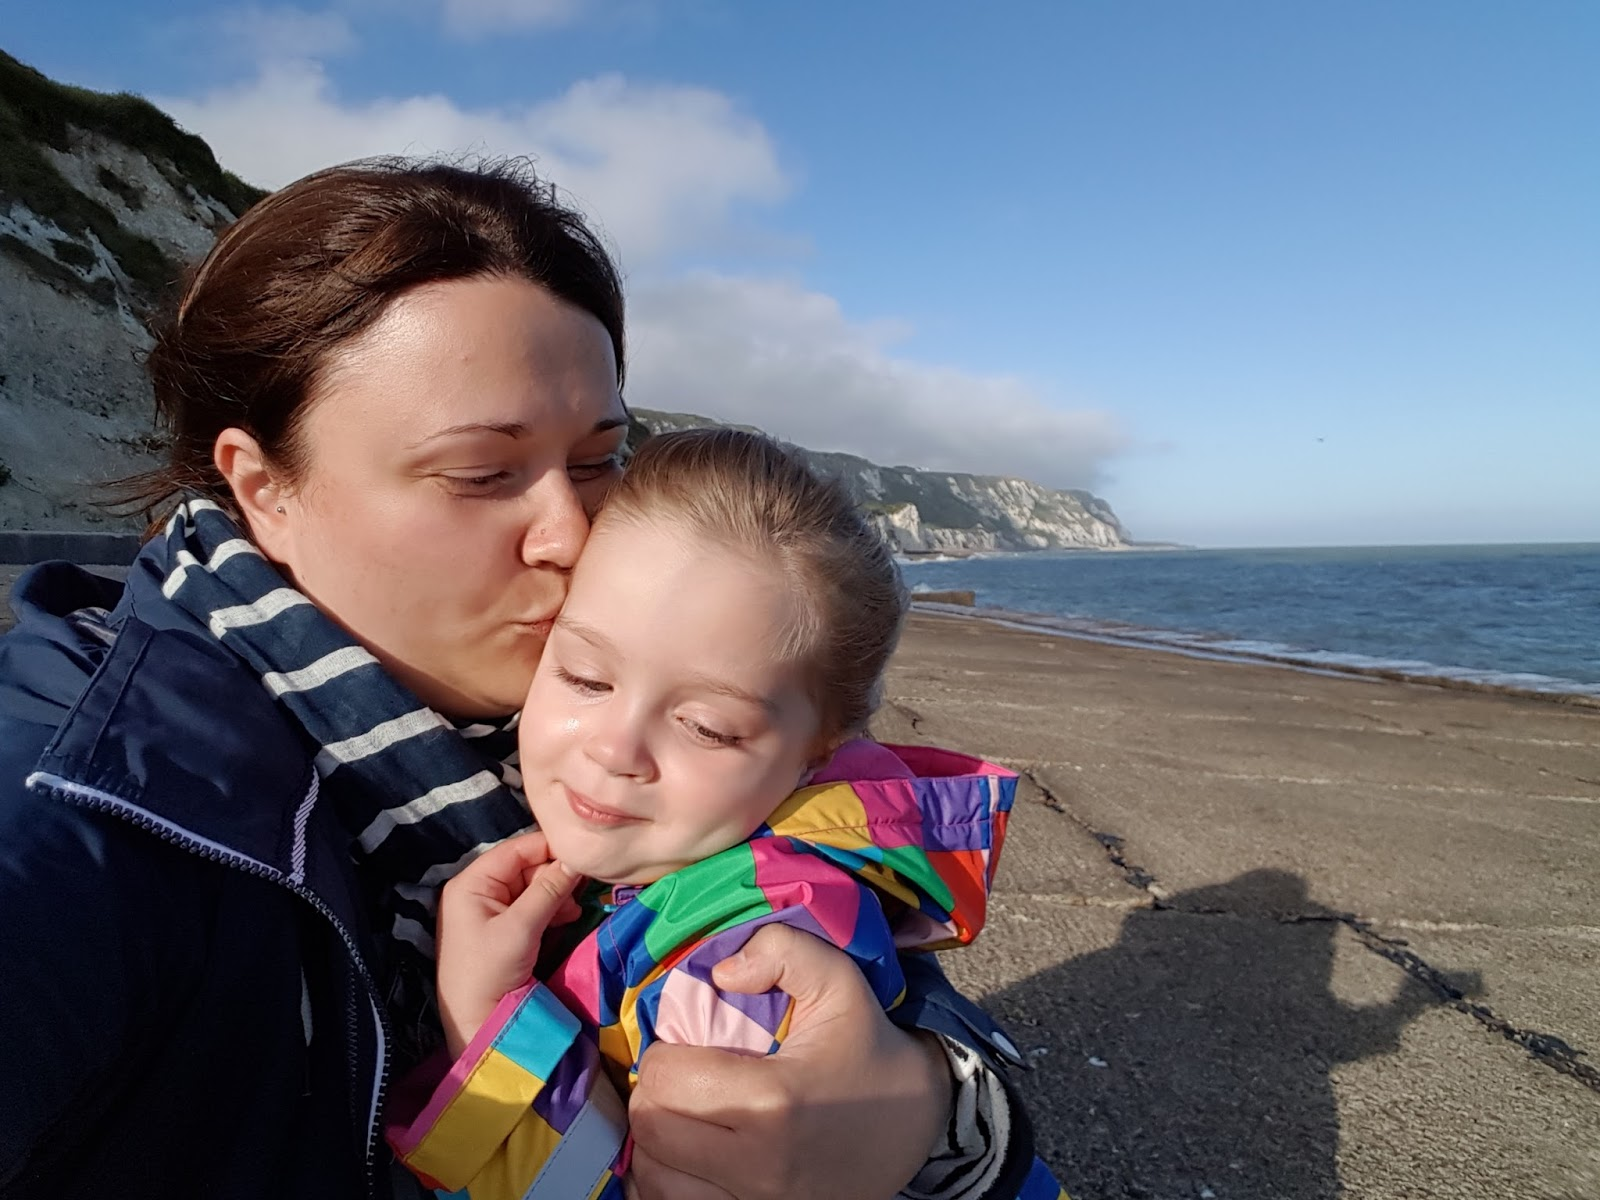 mum giving daughter a kiss on the beach